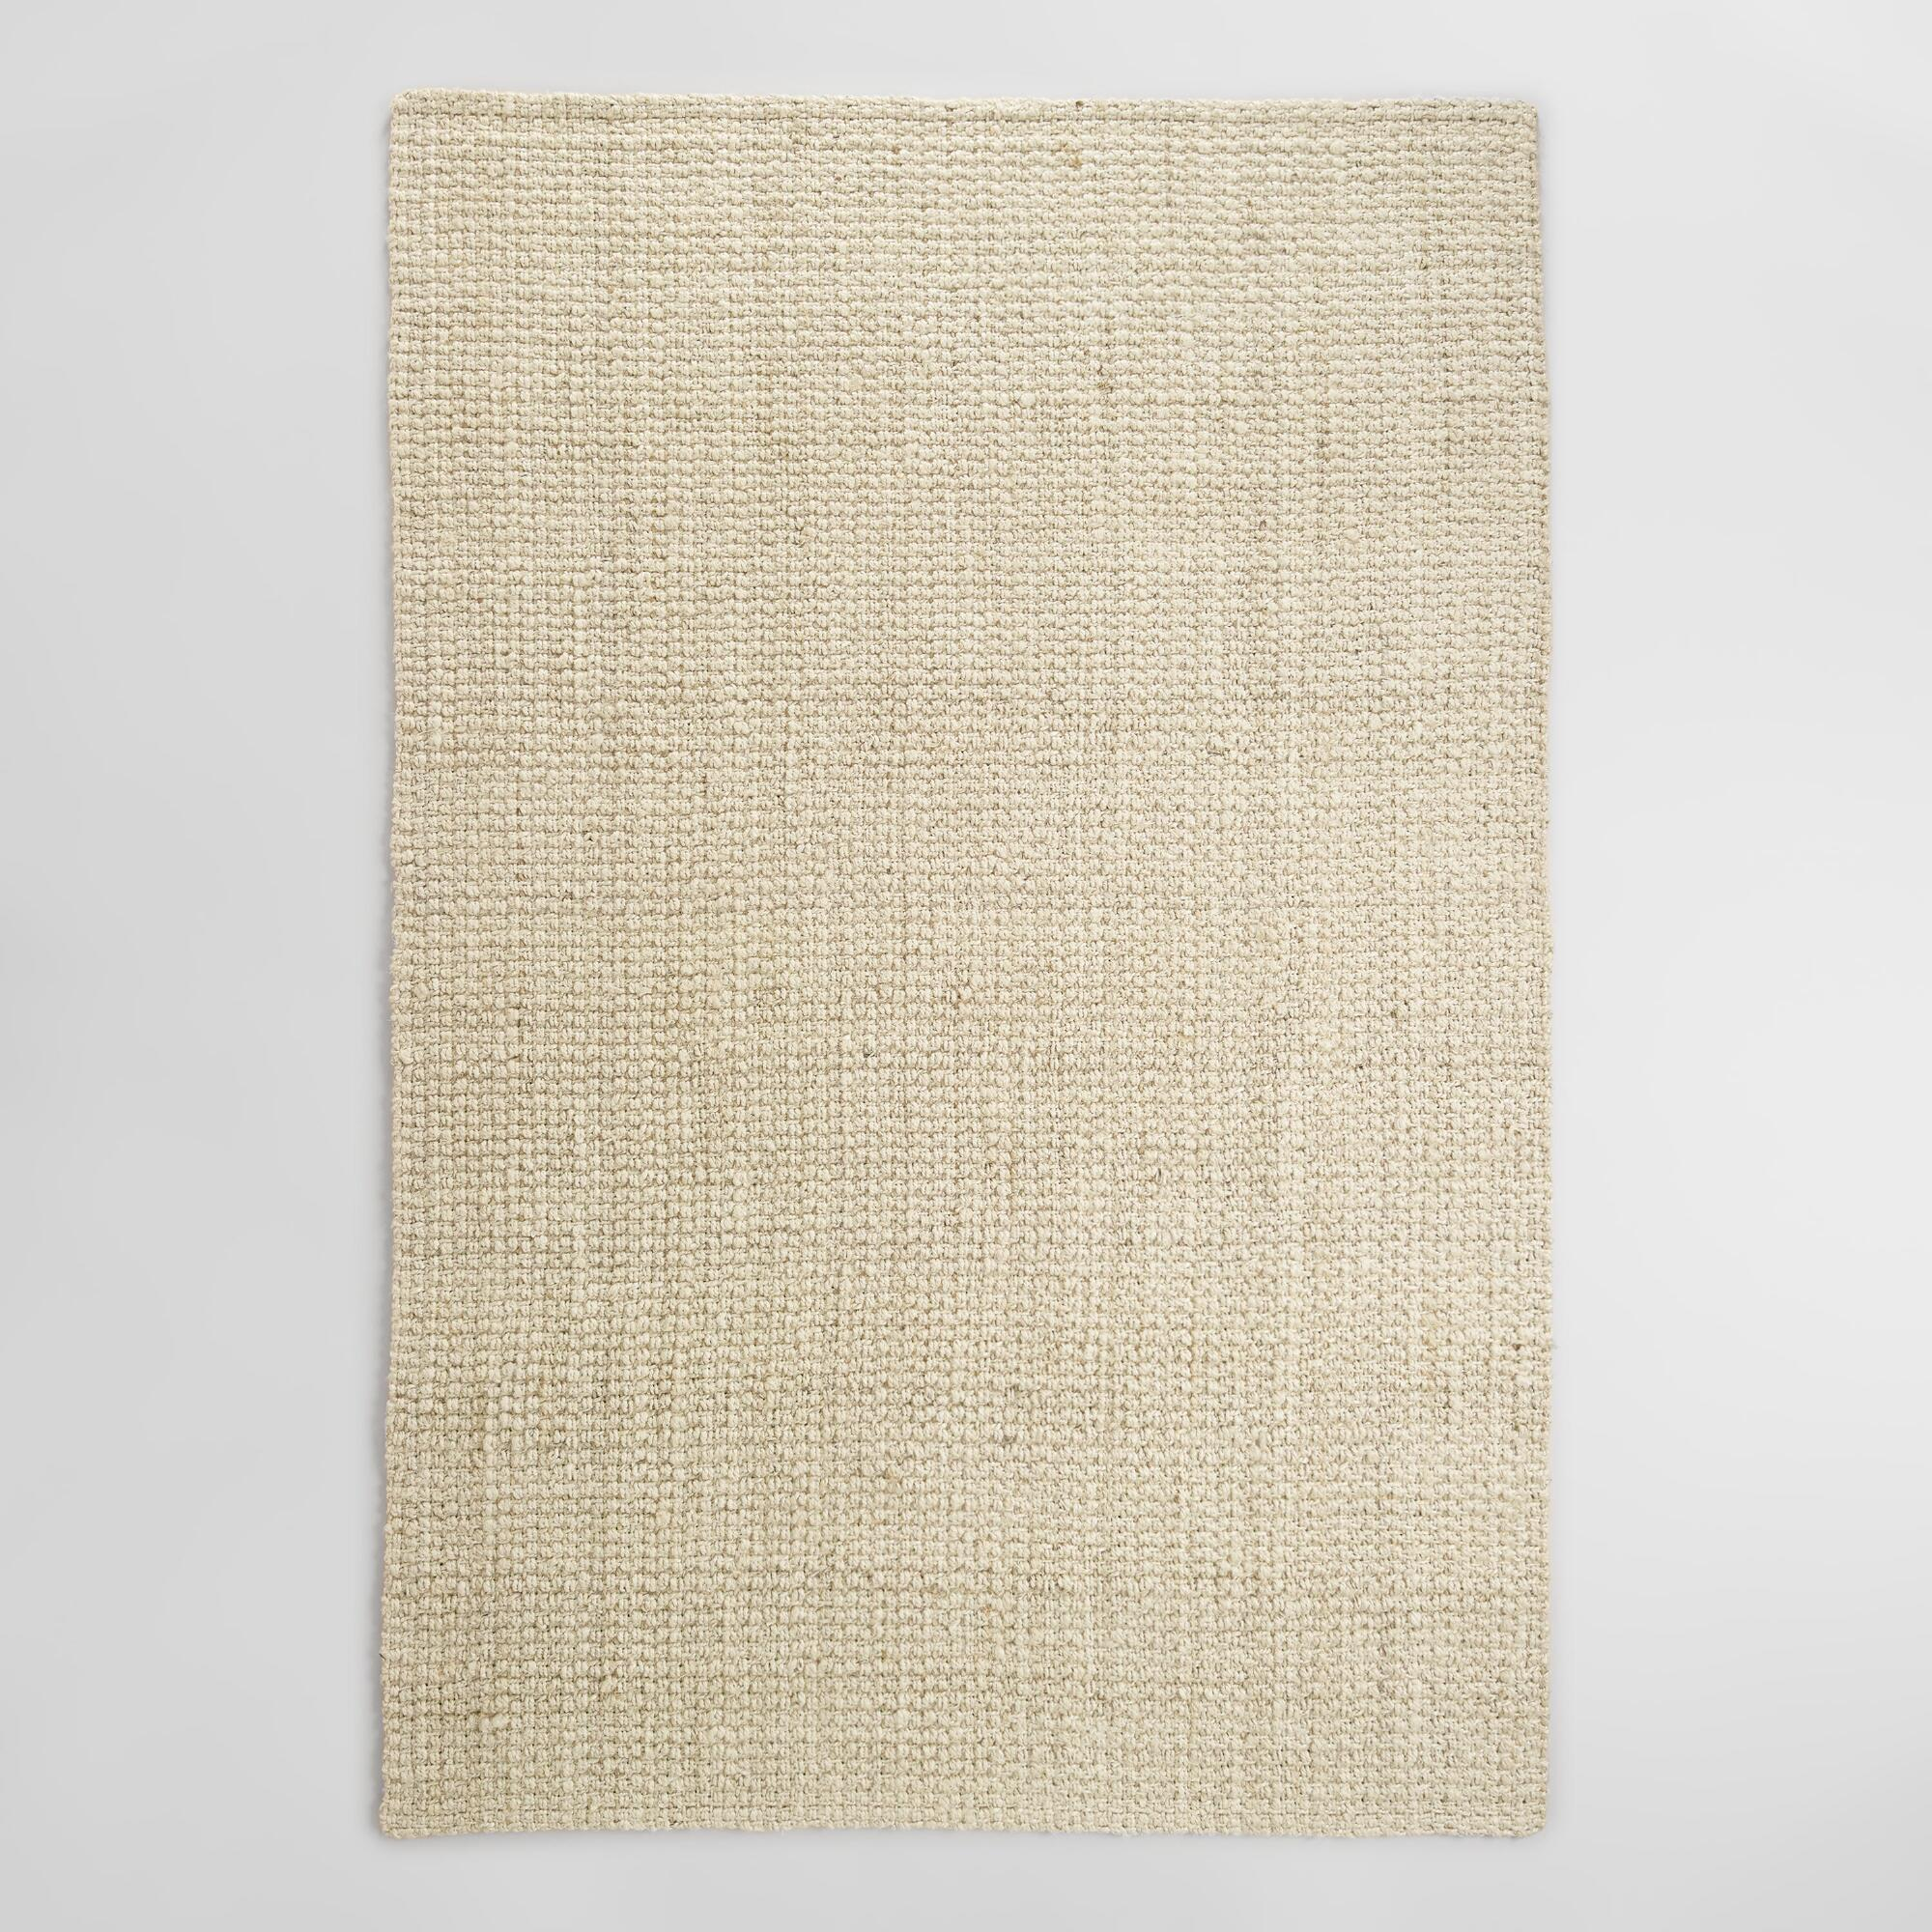 Washable Jute Rugs: Crafted Of 100% Jute With A Soft Underfoot Feel, Our